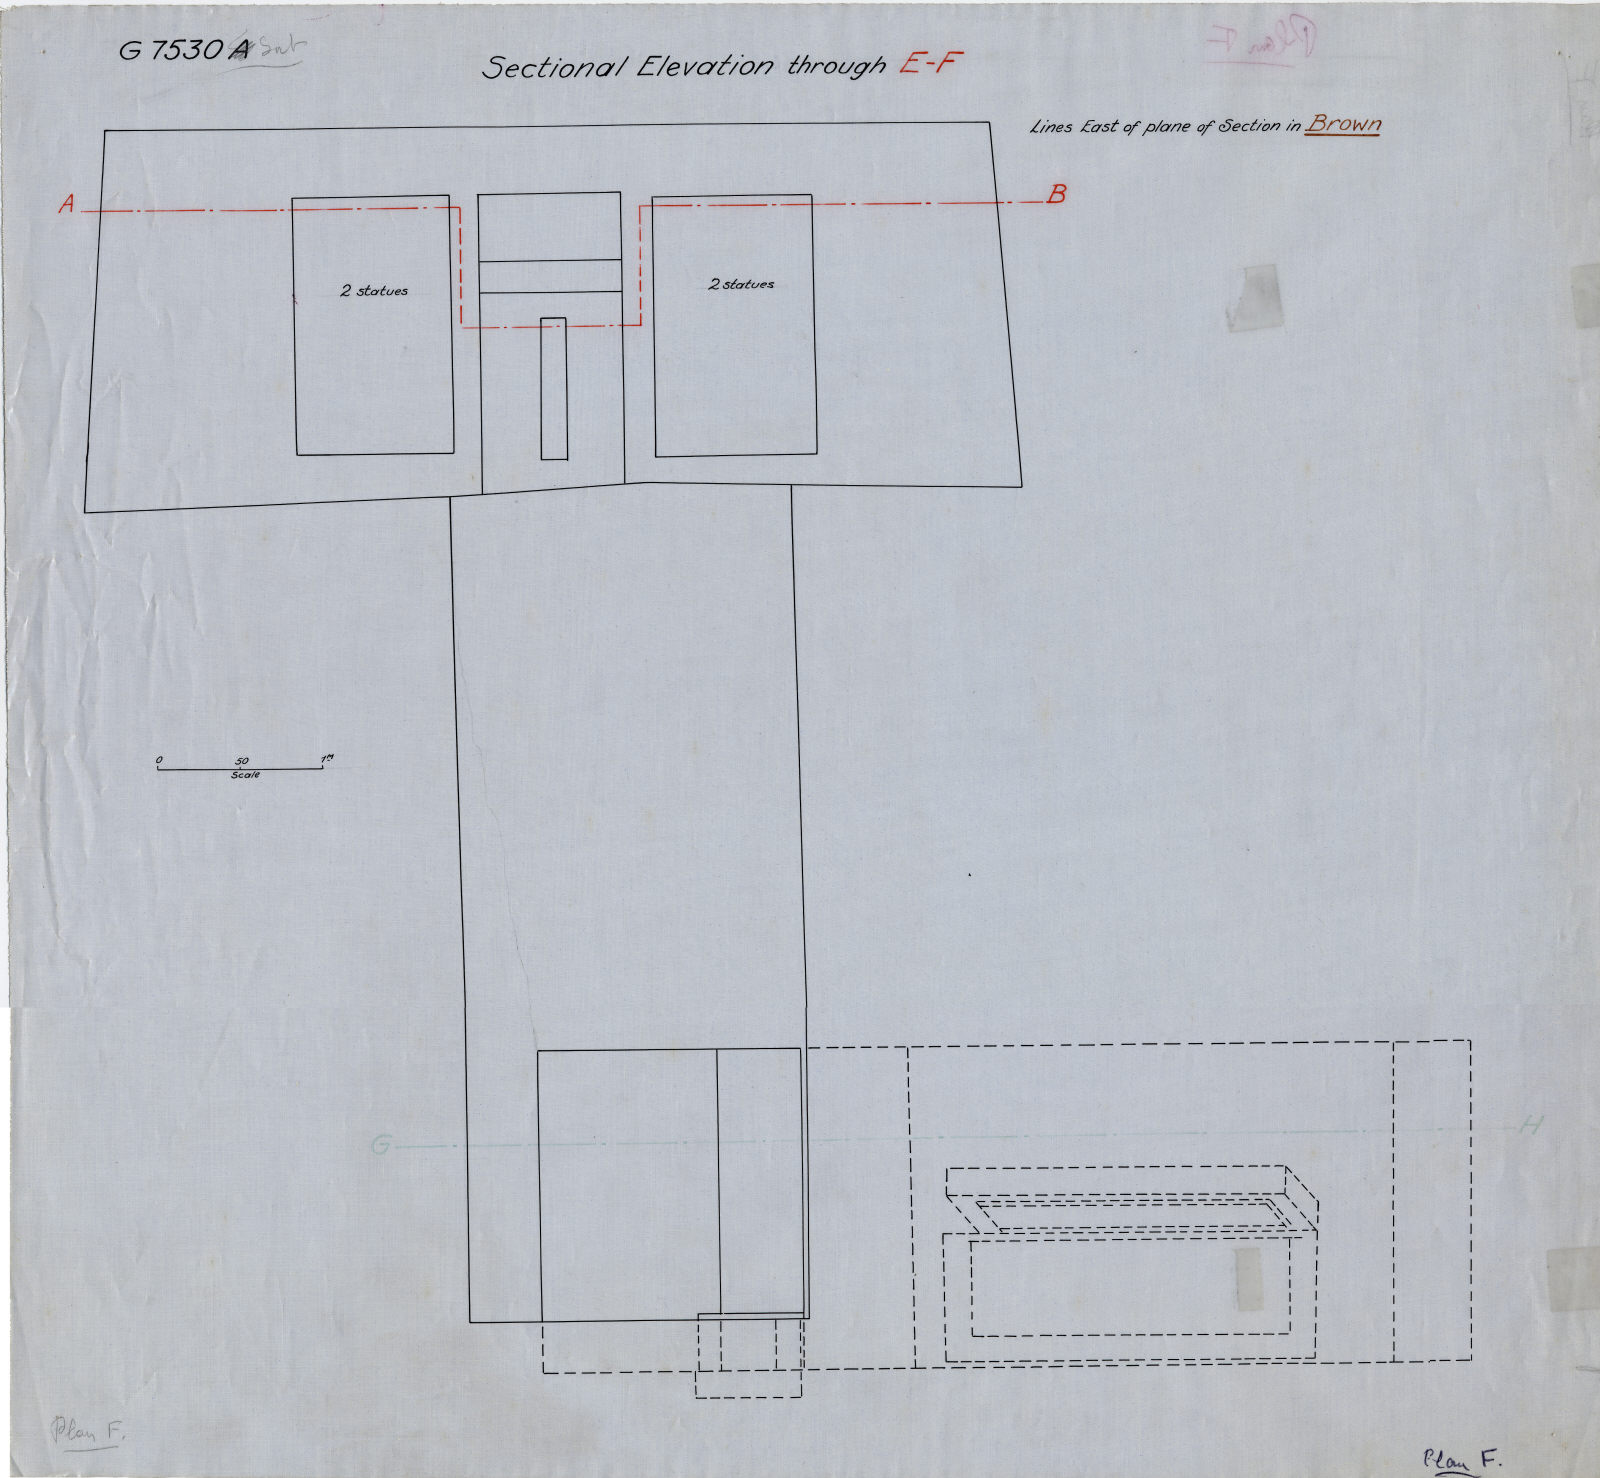 Maps and plans: Section of G 7530